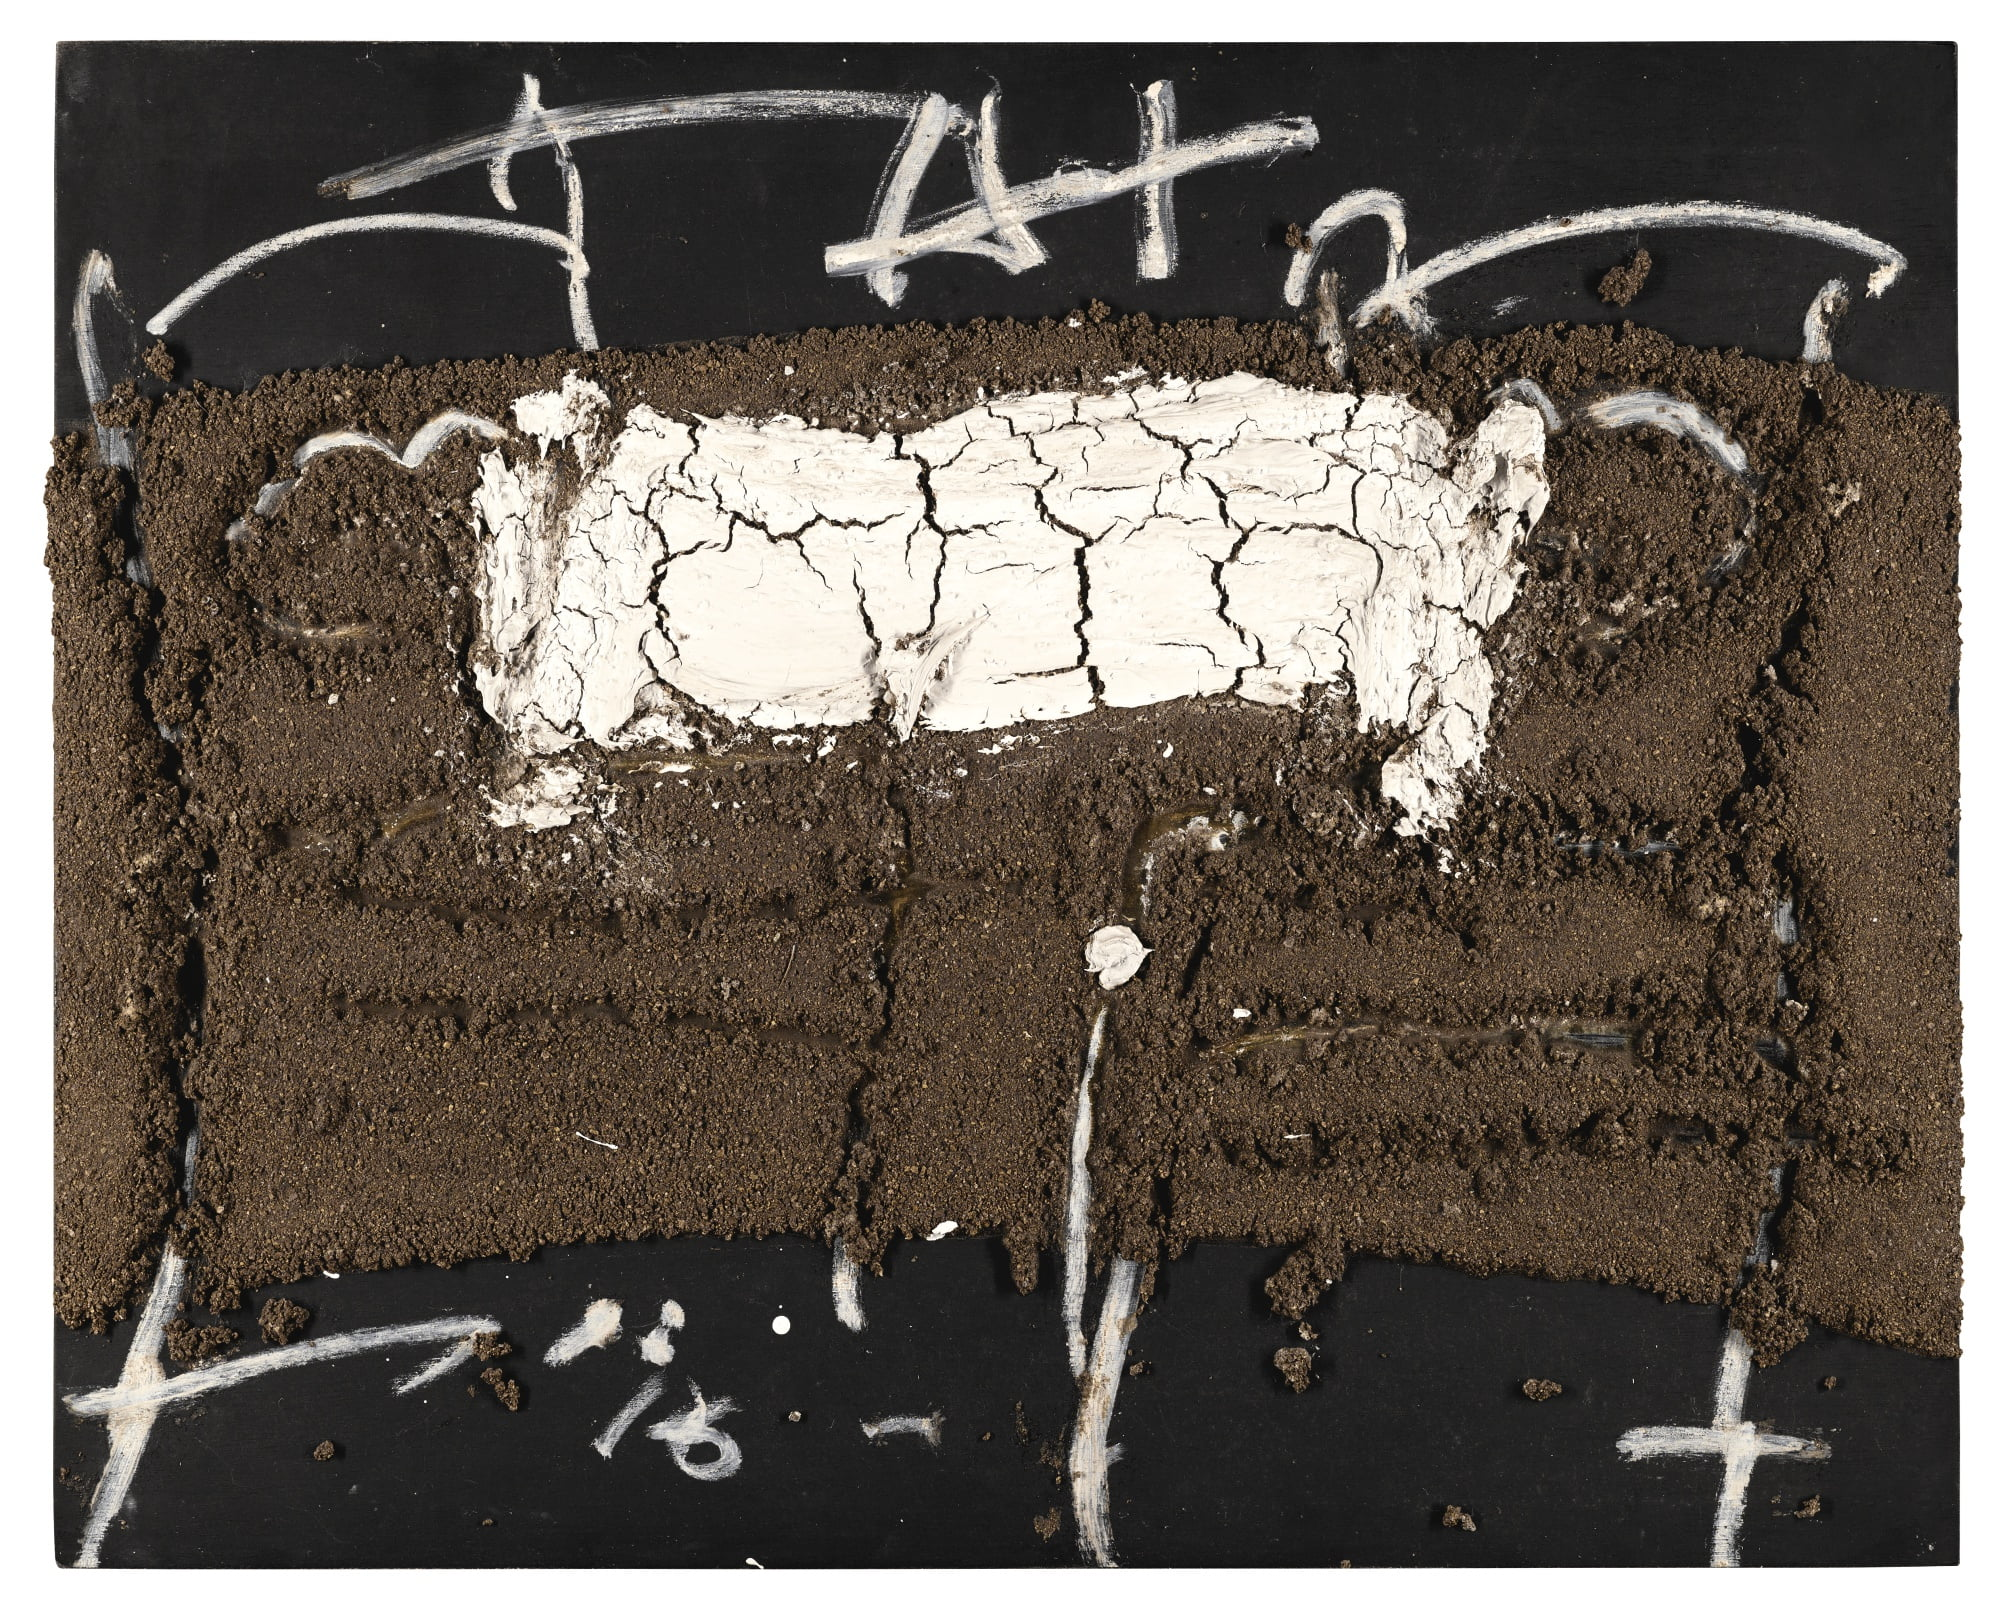 antoni tapies terra i escrits b abstract sothebys l17021lot9cnywen